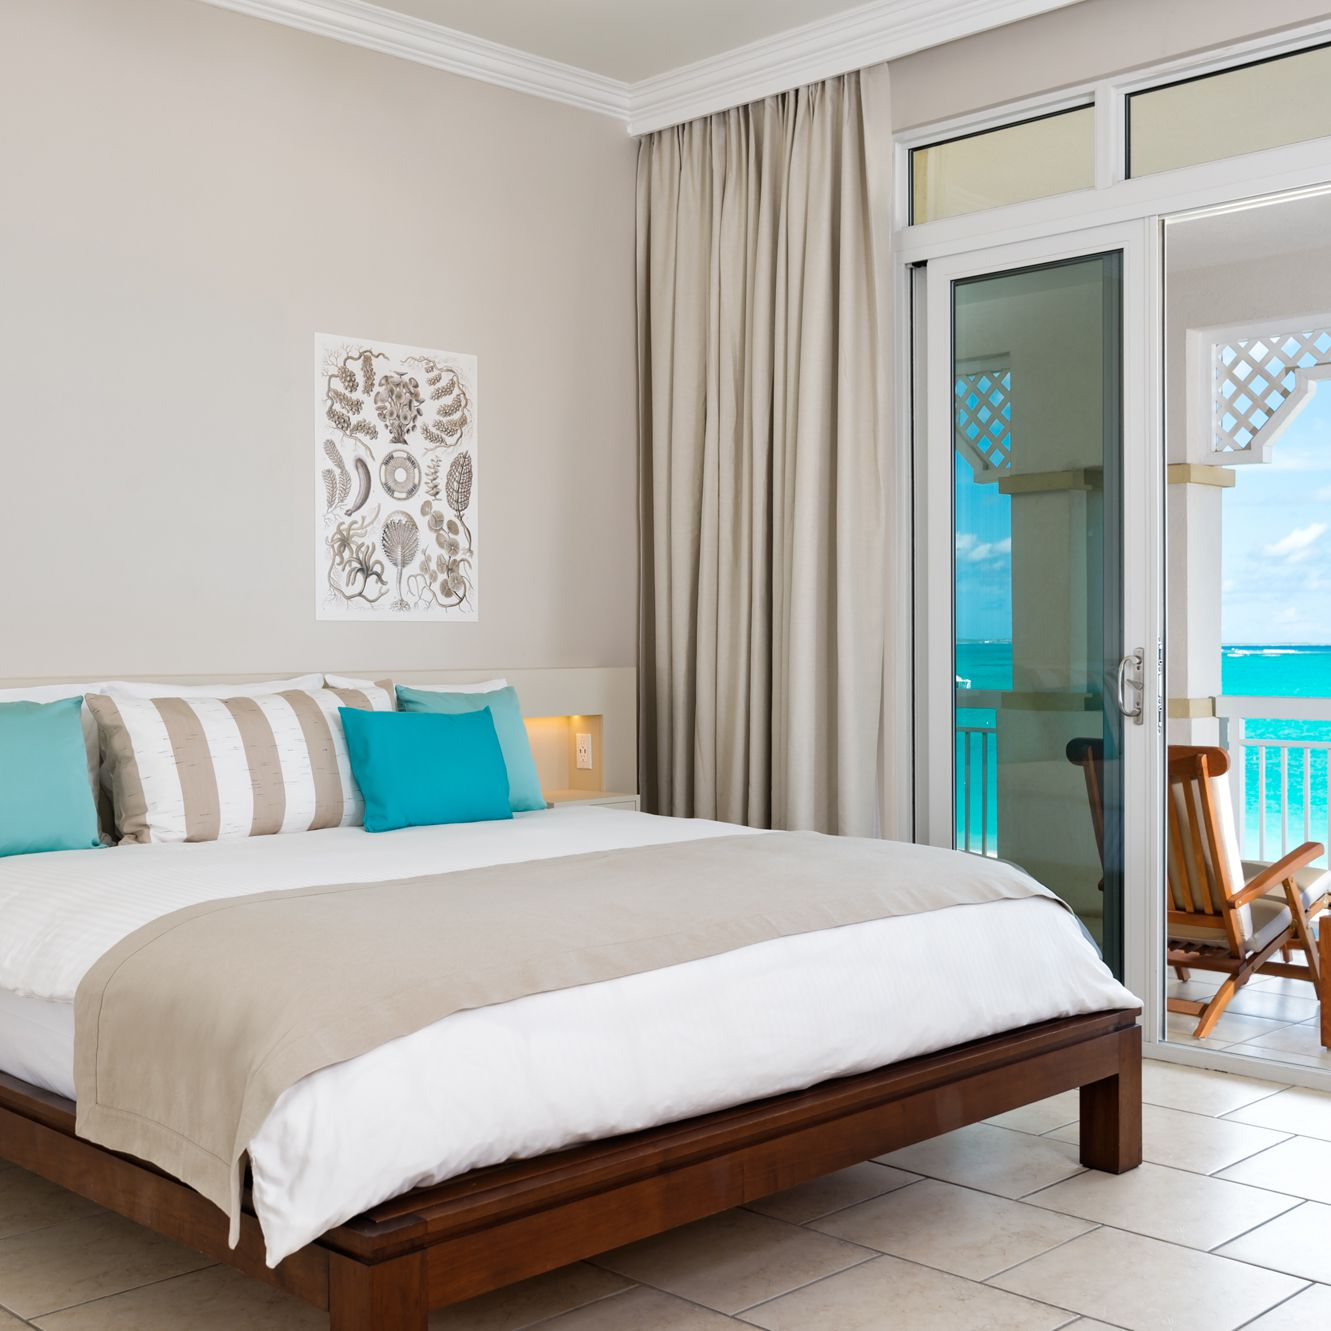 The 8 Best All-Inclusive Turks & Caicos Resorts of 2019